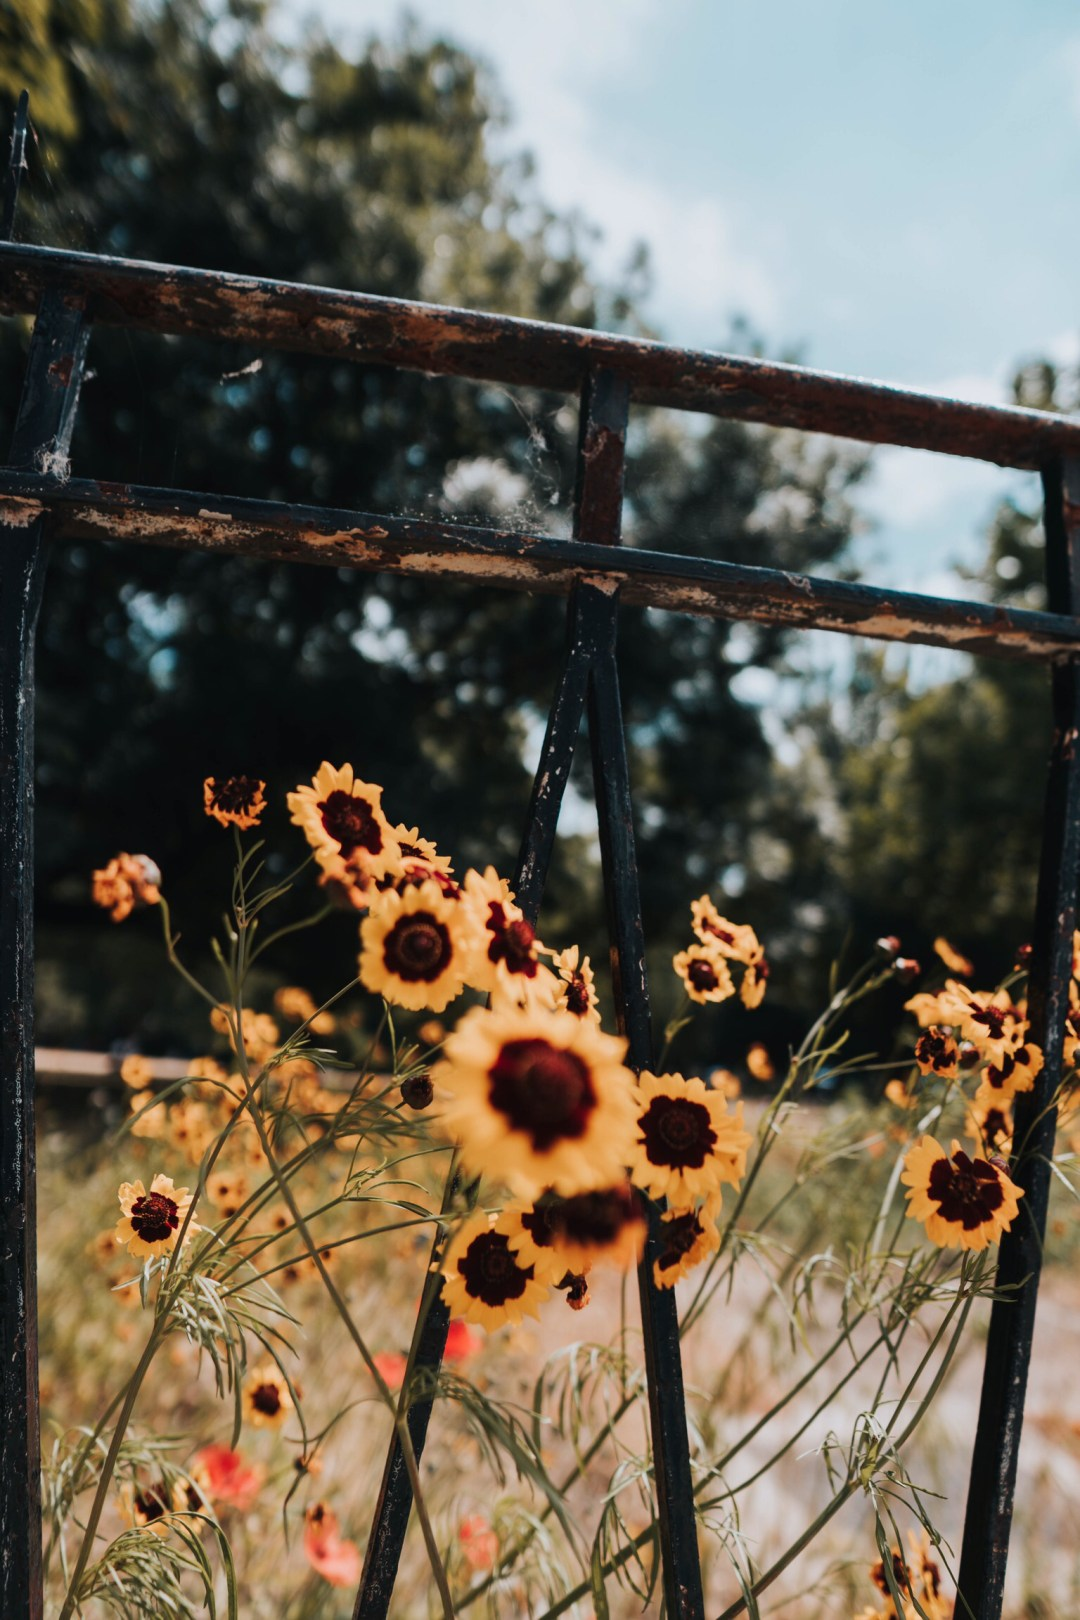 Outdoor Box London, Outdoor, Flower And Rust | Hd Photo By Dex Ezekiel